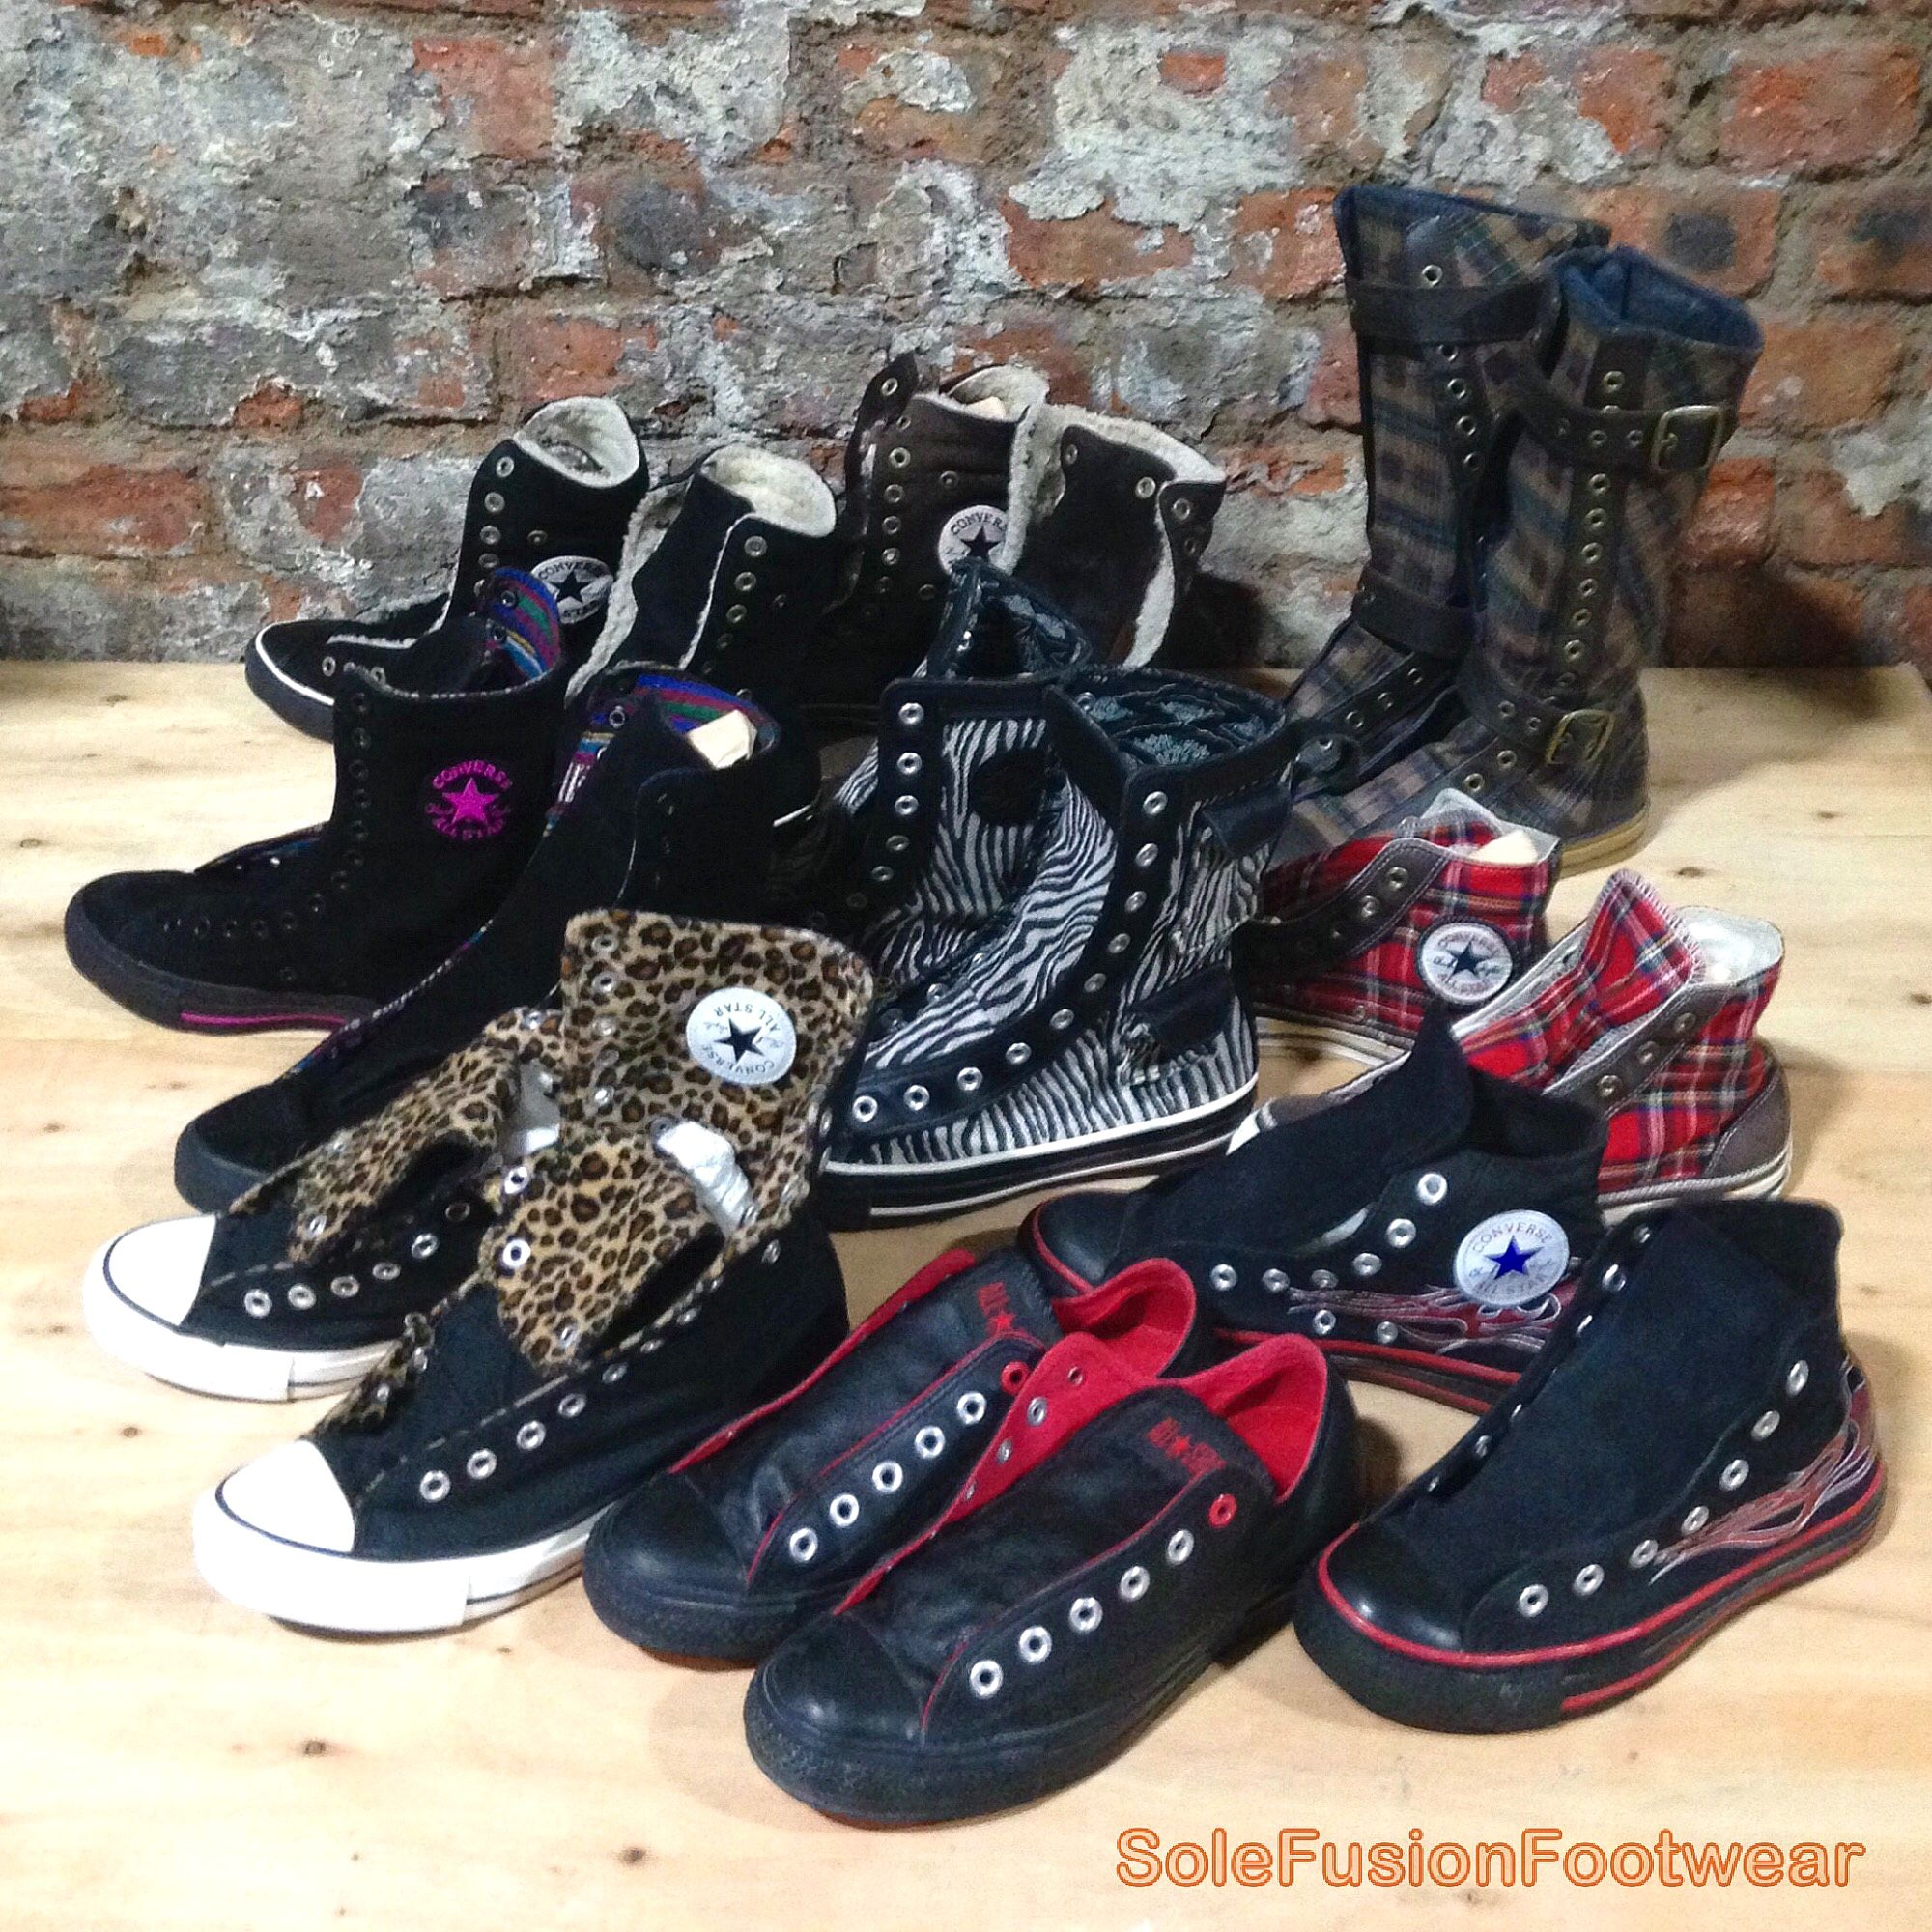 8a0633402c47ec Converse All Star X Hi Rare Chuck Taylor High Low Top Vintage Shoes and  Boots